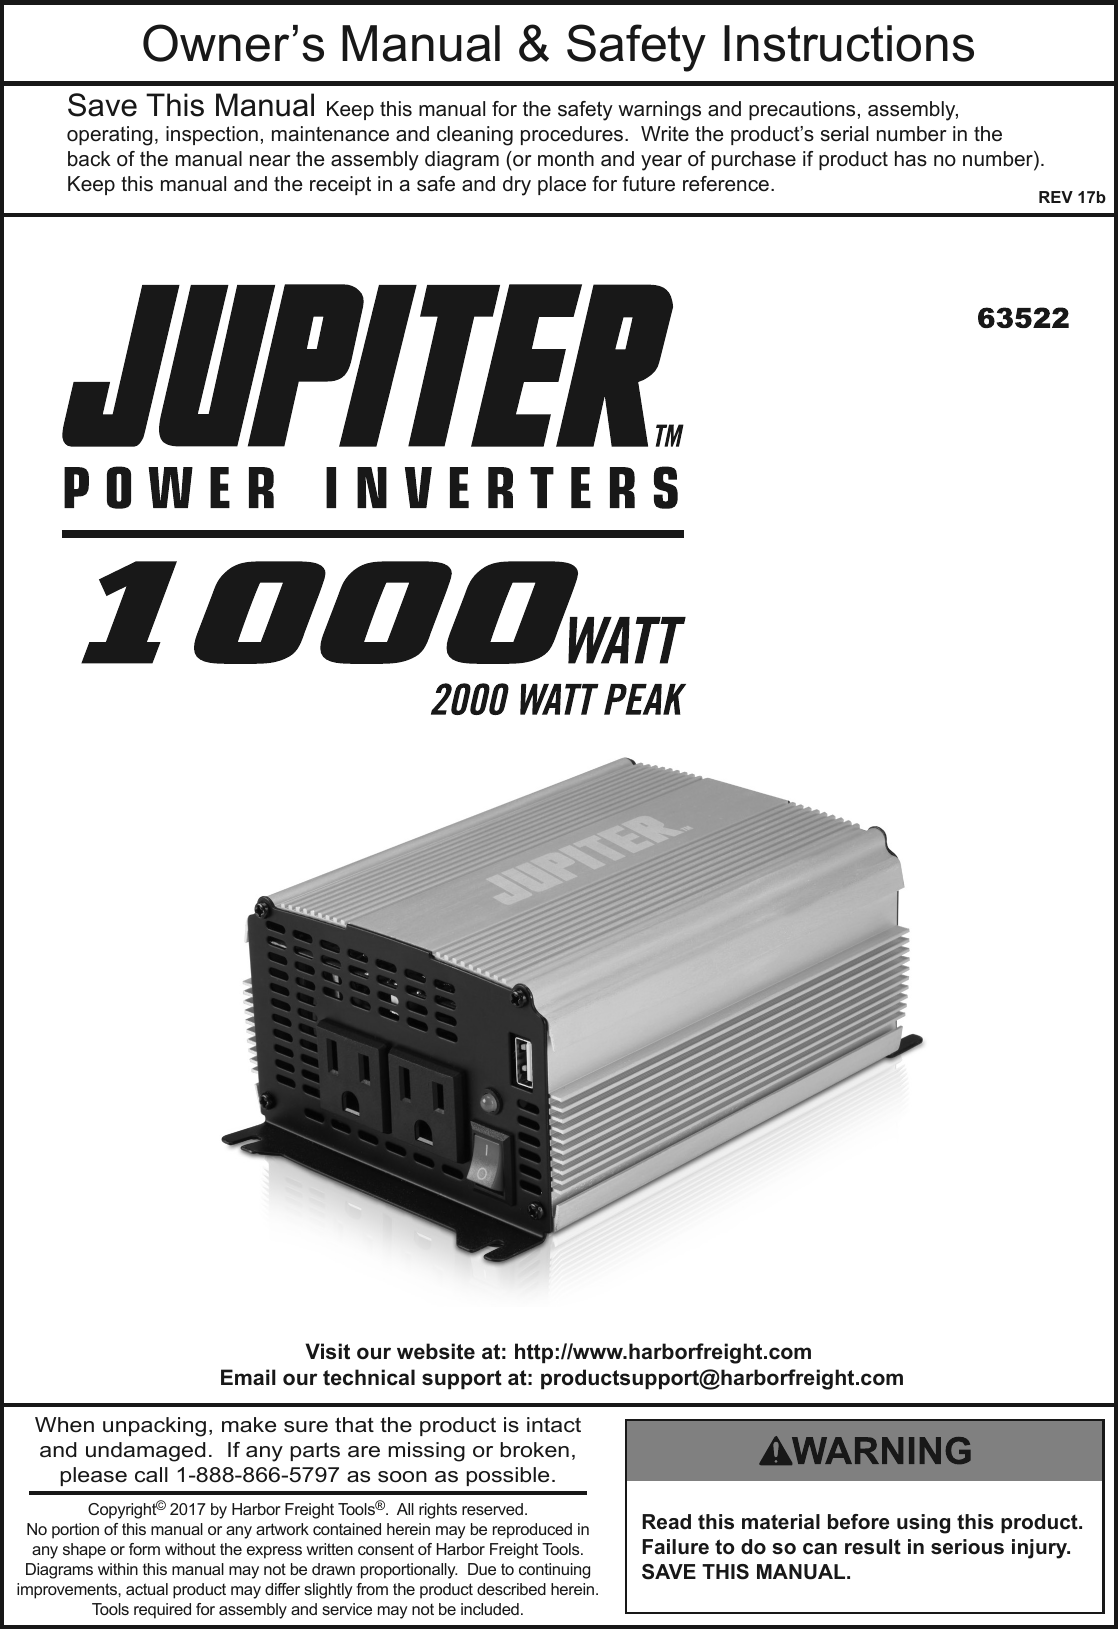 Manual For The 63522 1000 Watt Continuous 2000 Peak Power Inverter Circuit Diagram On 1500 Schematic Page 1 Of 12